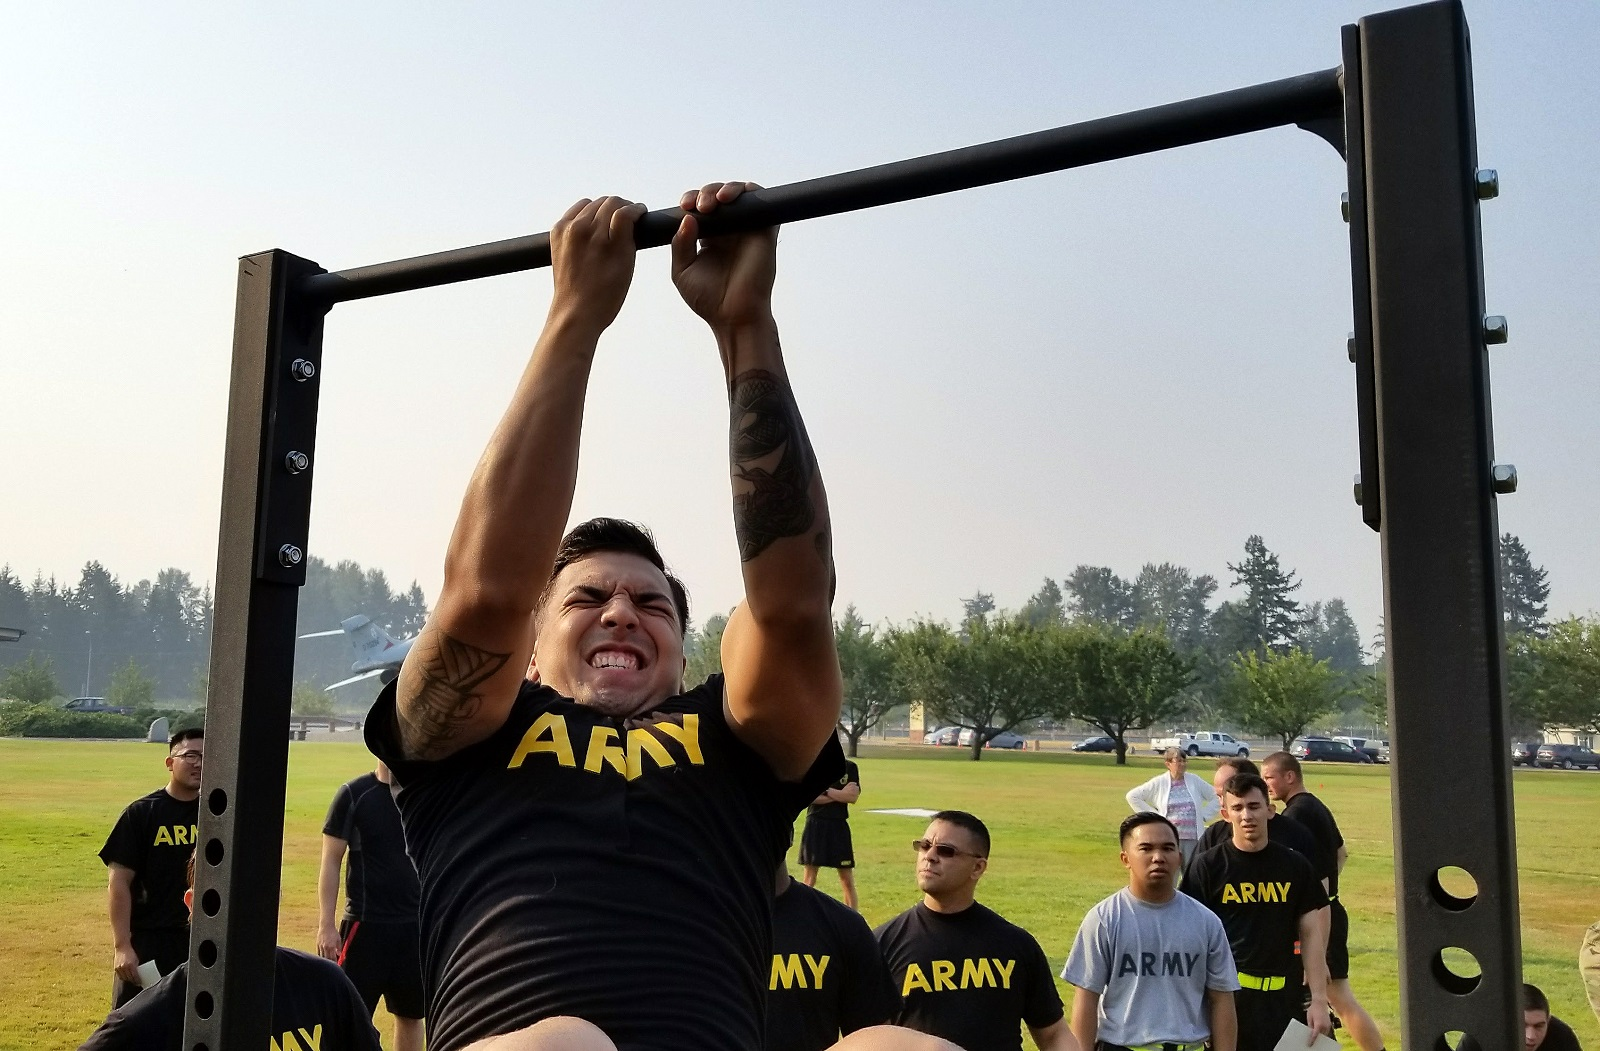 Army pt failure discharge